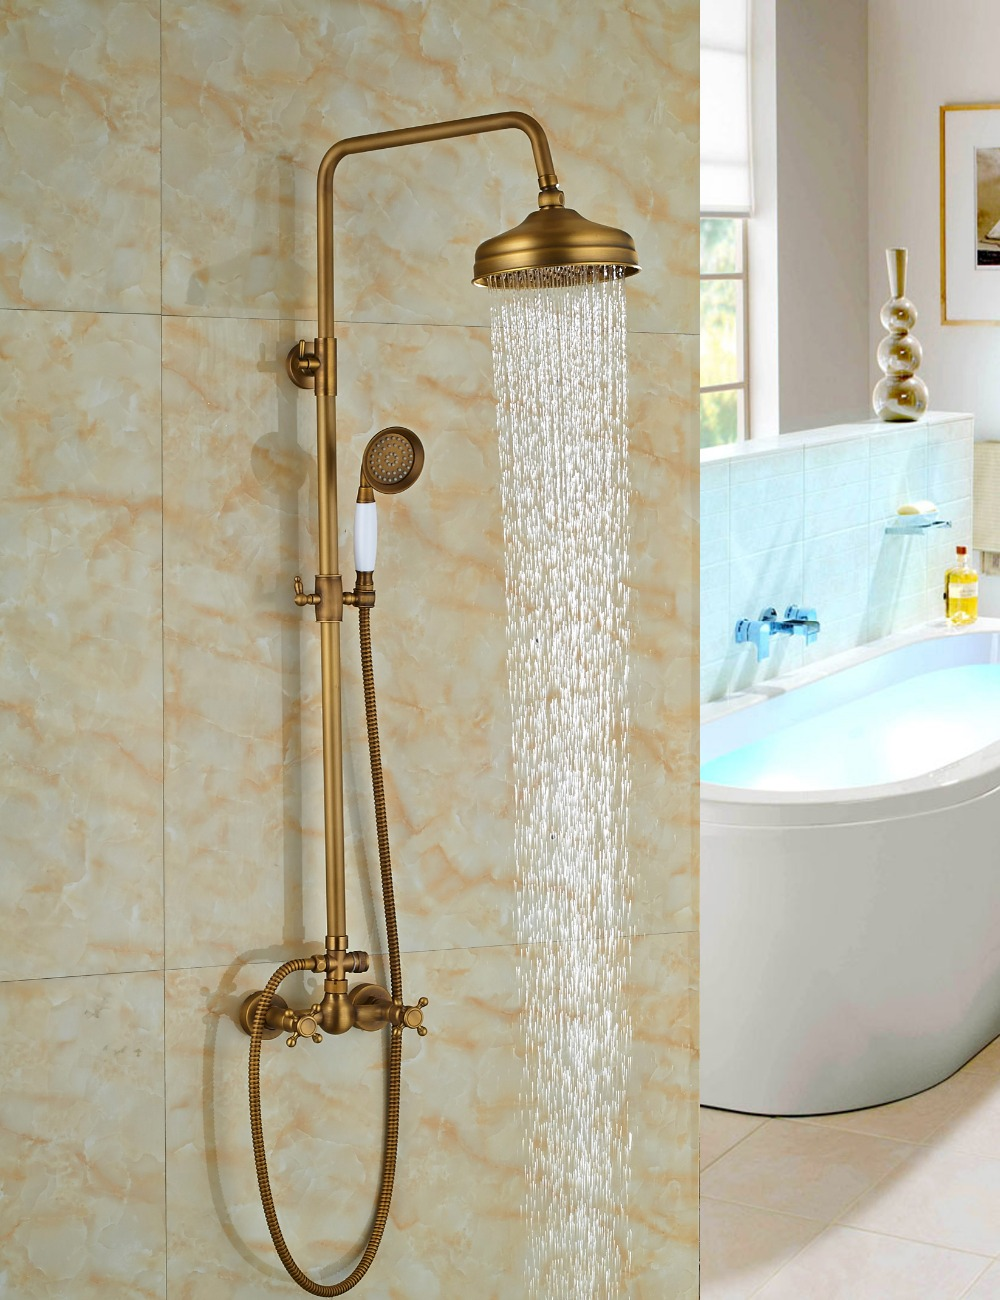 Wholesale And Retail Promotion Luxury Antique Brass Rain Shower Head Faucet Valve Mixer Tap W Hand Shower Sprayer 2 Handle In Shower Faucets From